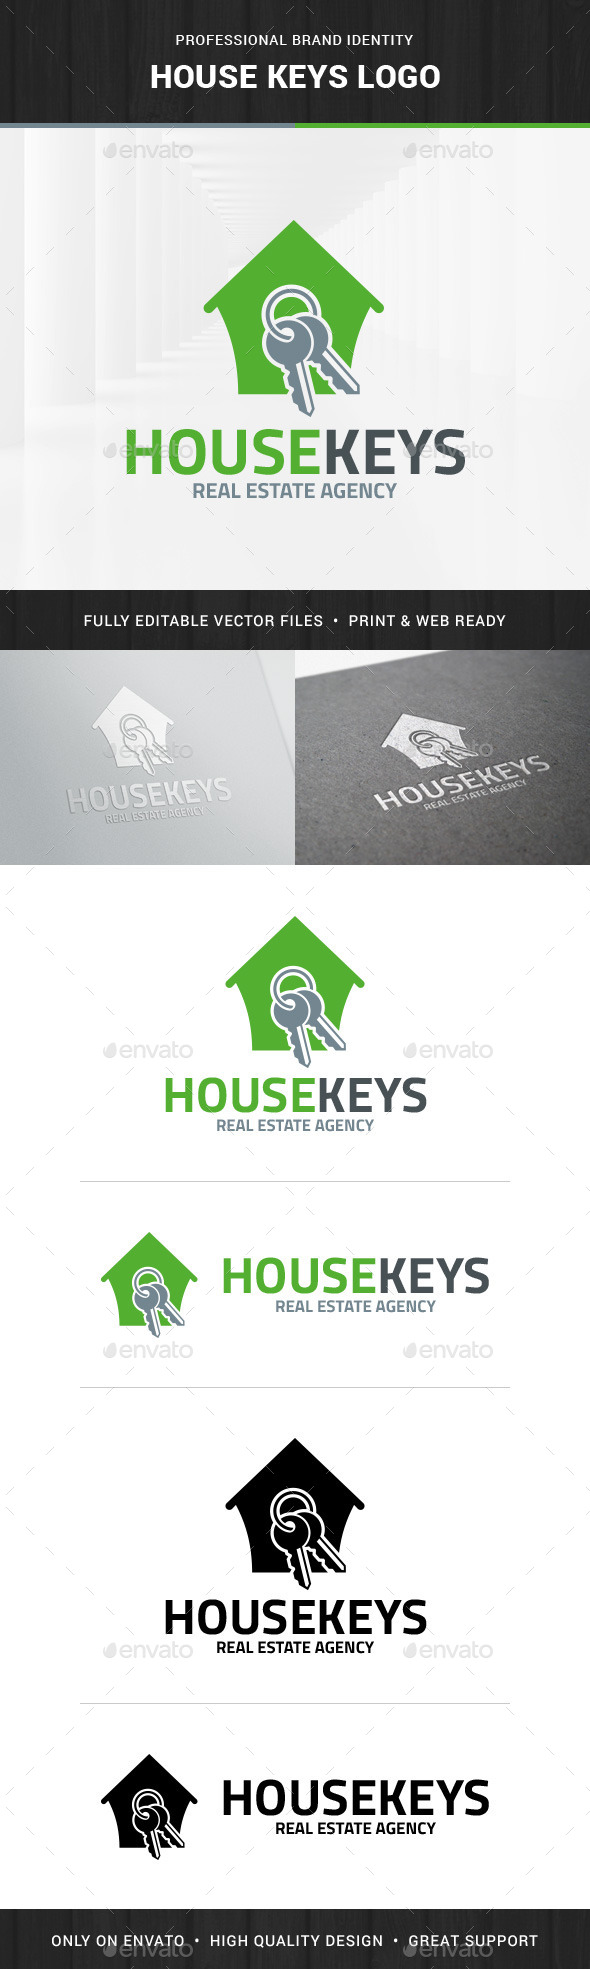 House Keys Logo Template - Buildings Logo Templates